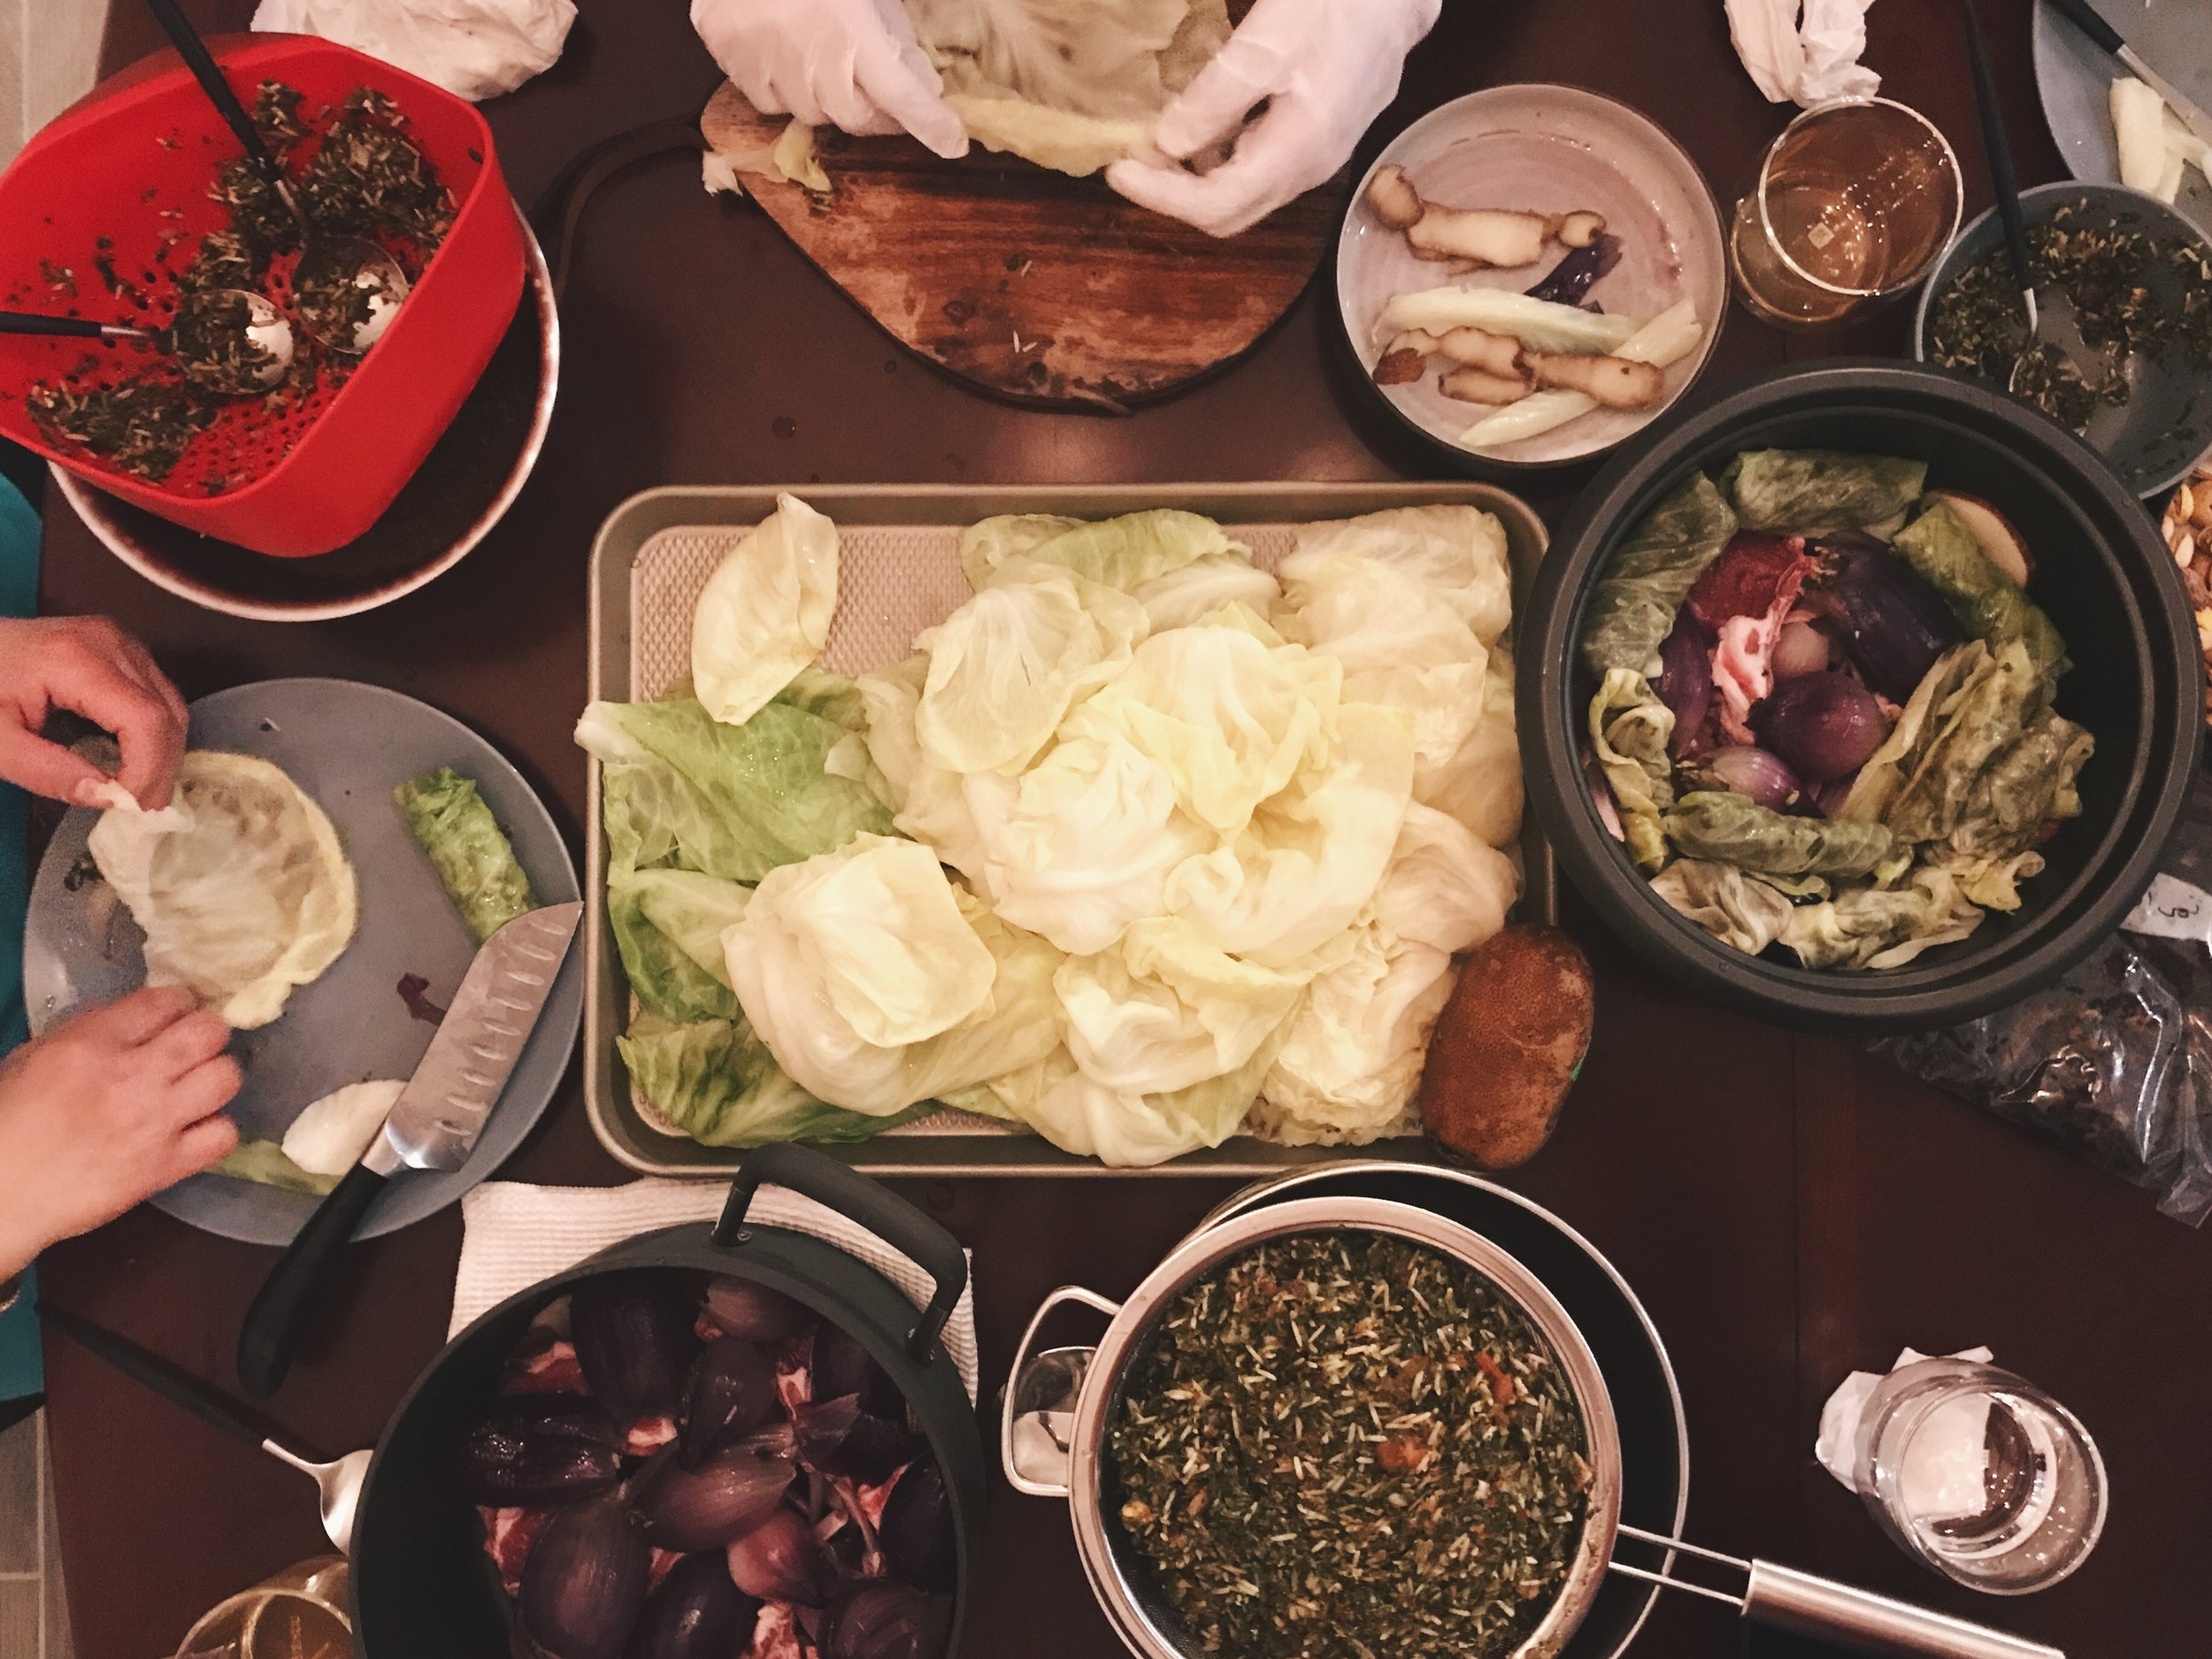 My mum and sister-in-law came to visit me, so naturally I had them help me make dolma.